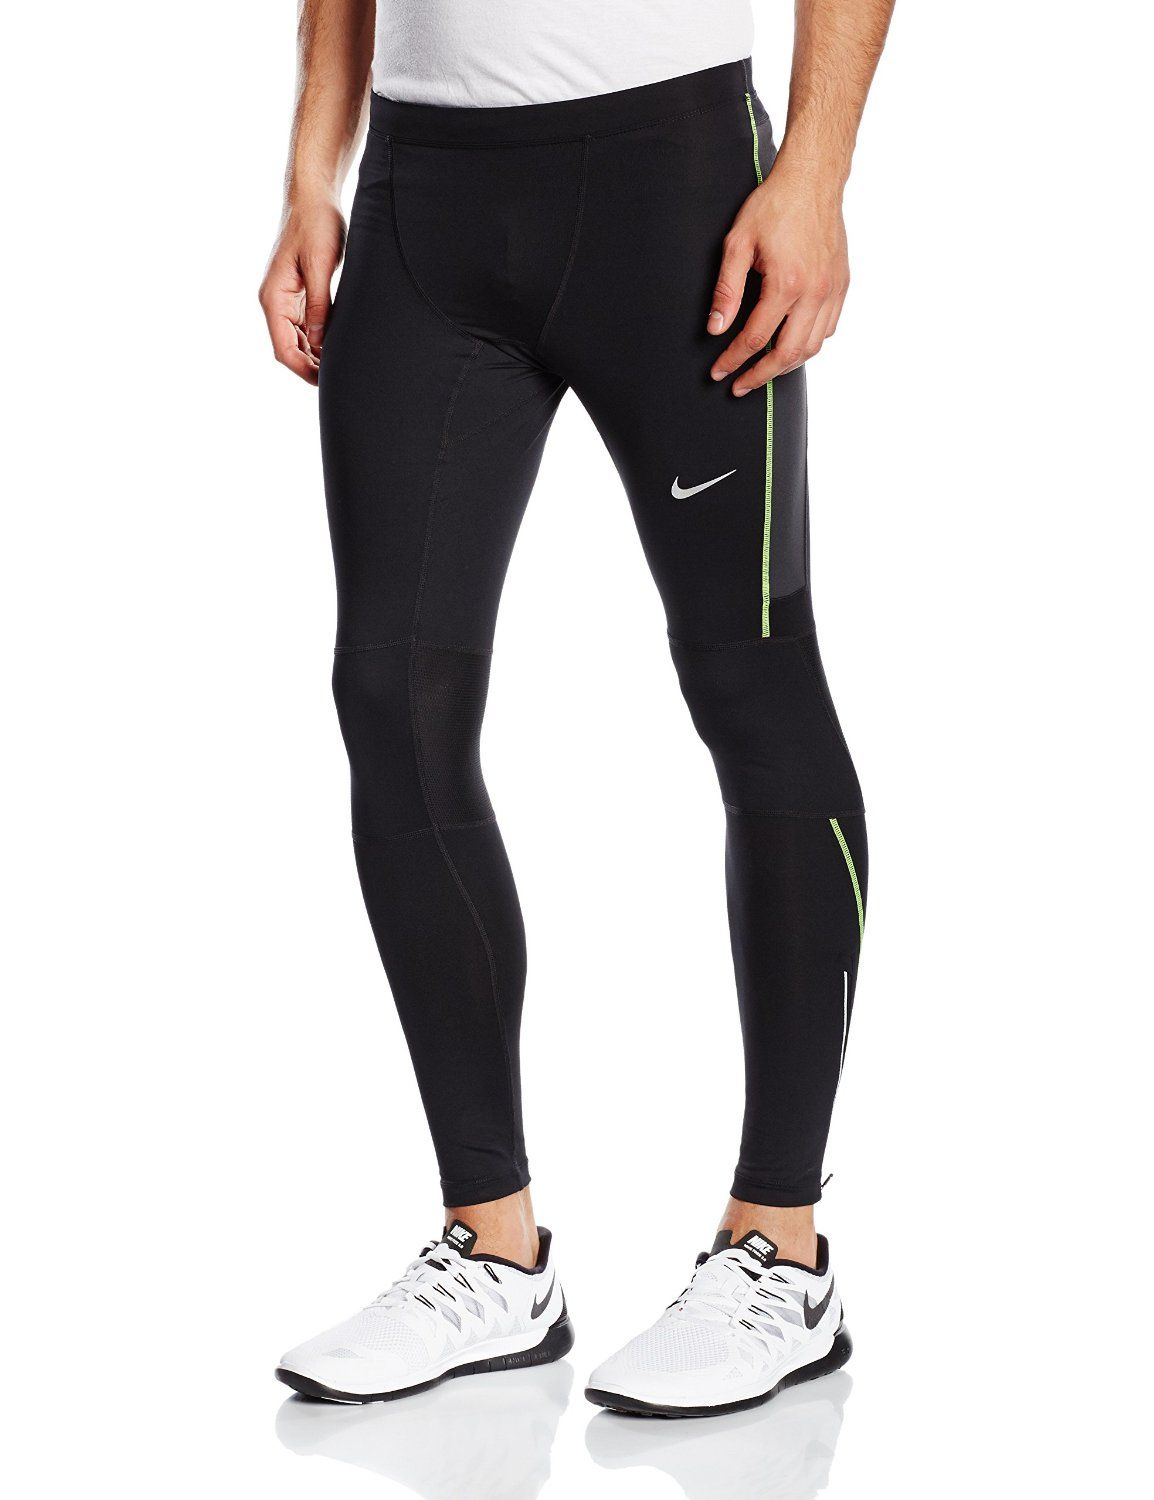 pretty cheap preview of classcic 11 Best Men's Running Tights for 2016-2017 | Birthday Stuff ...